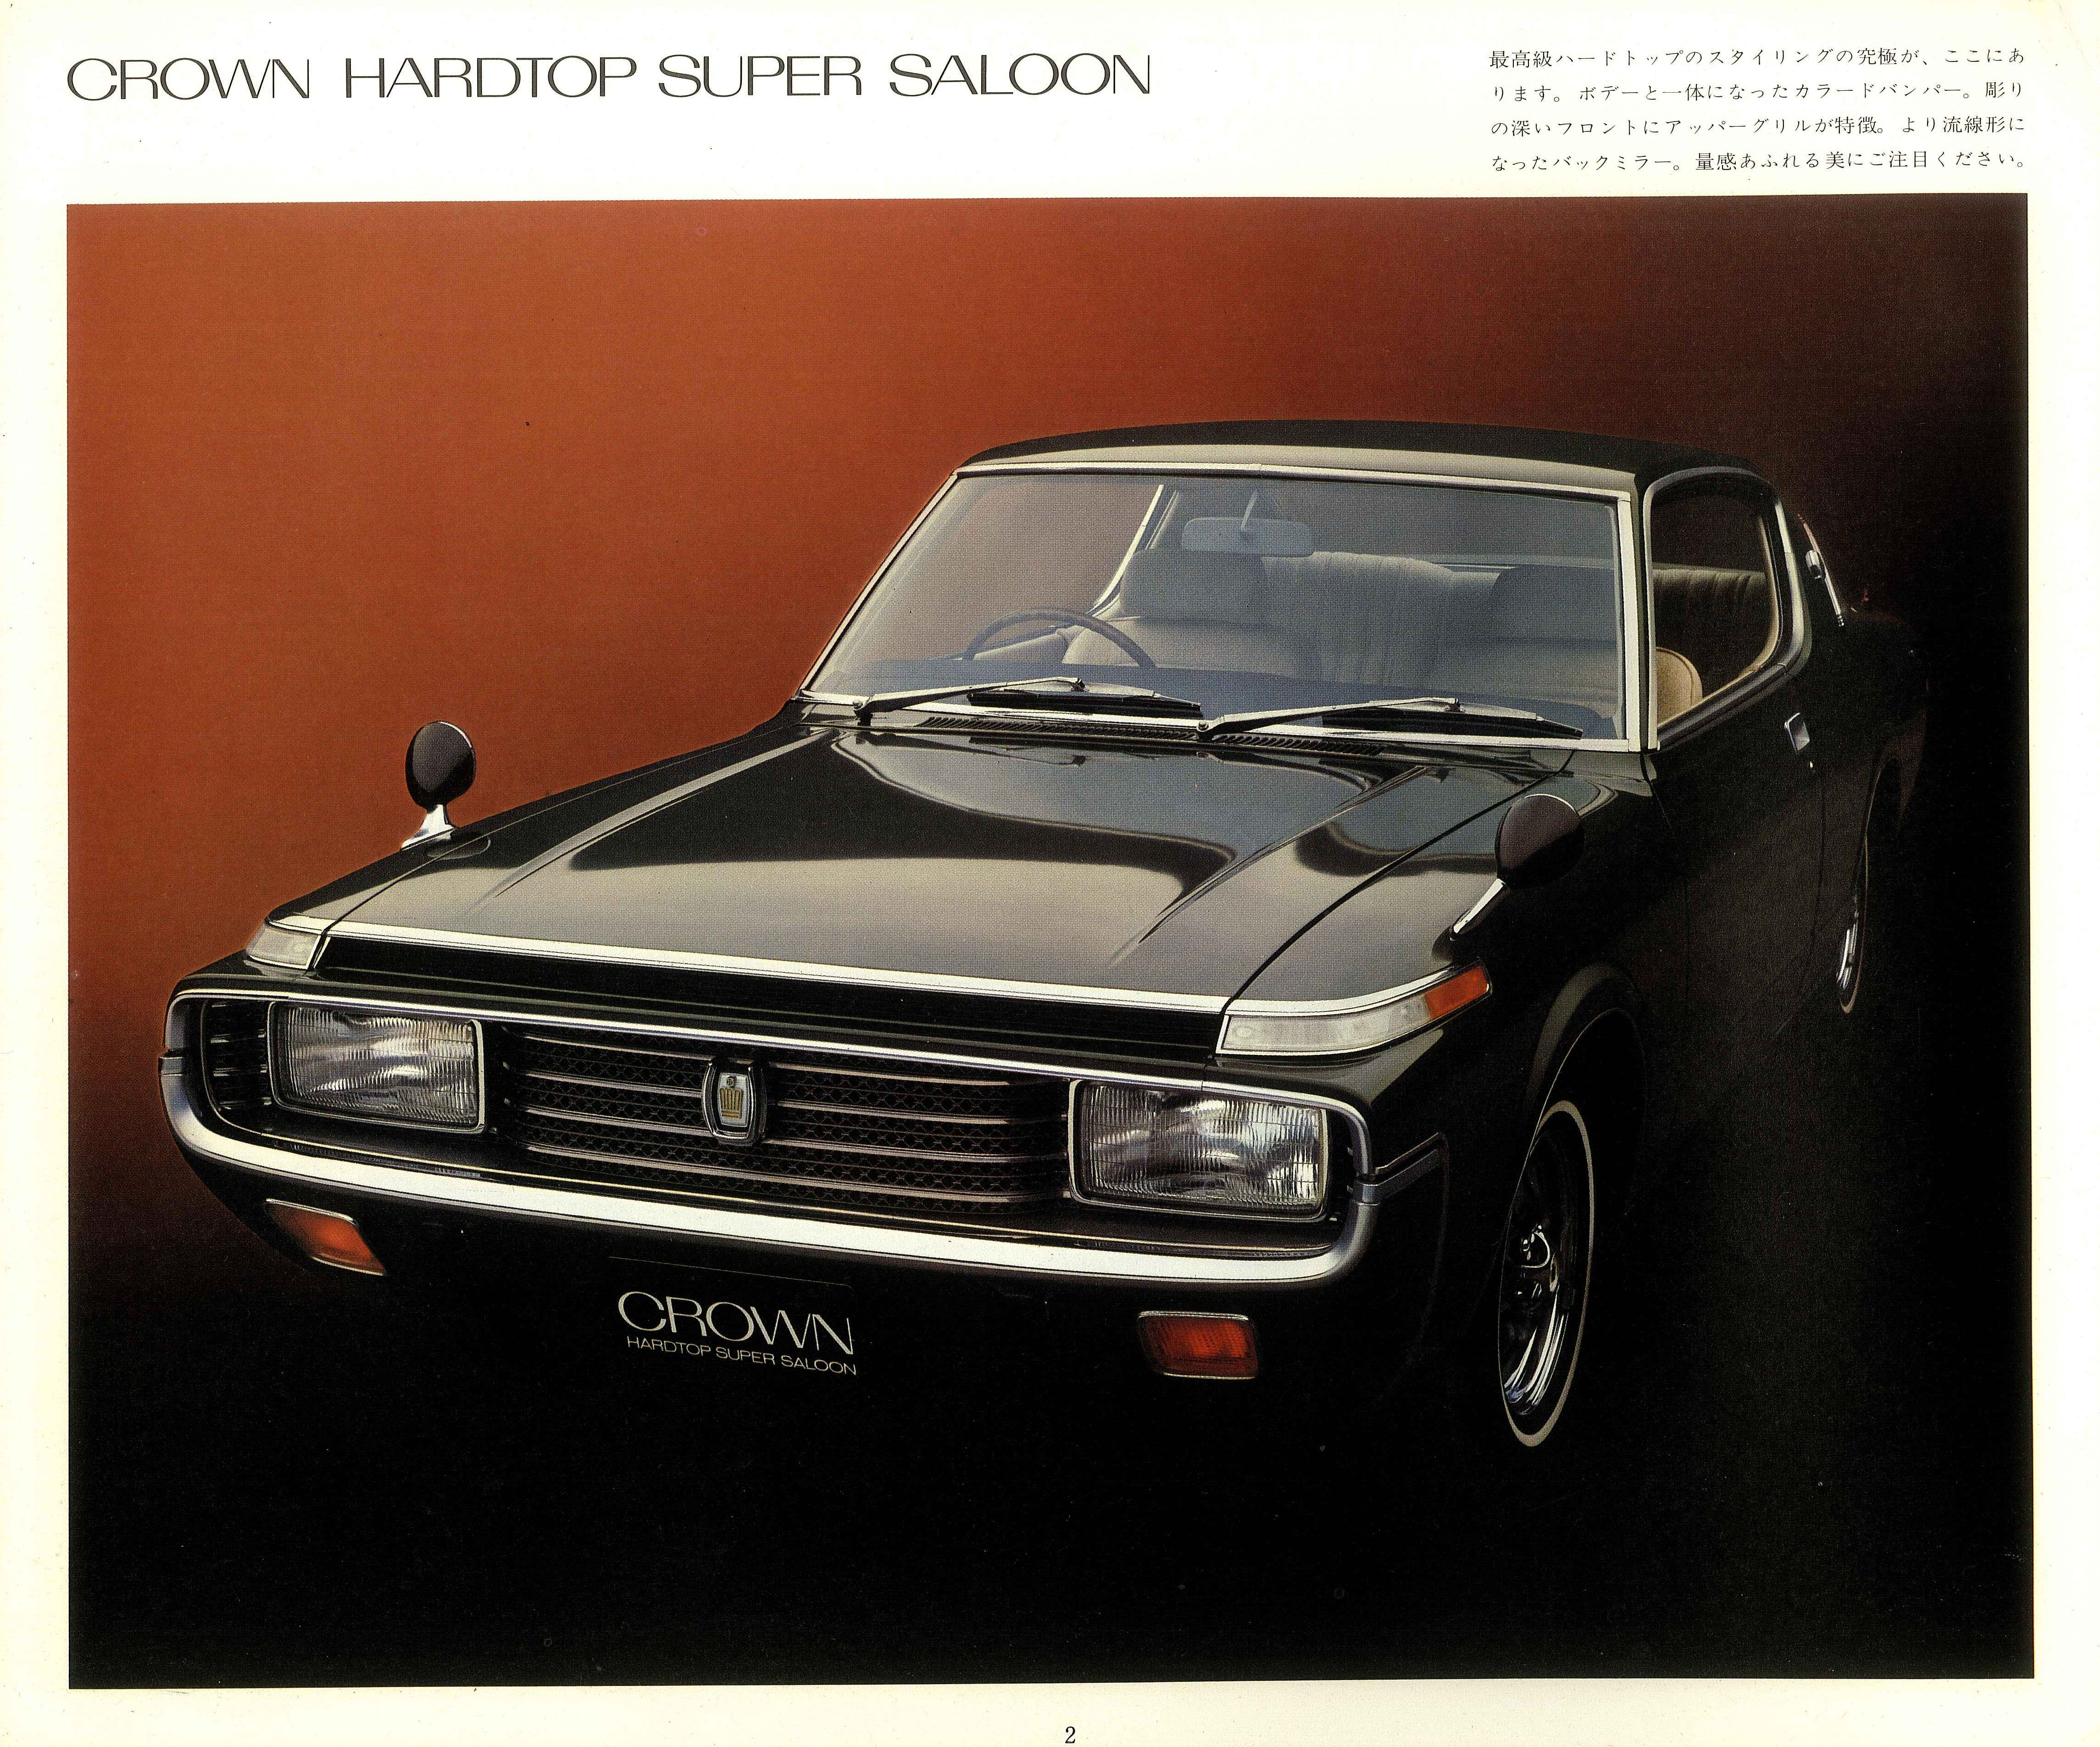 Toyota Crown Hardtop - publ (1971) | Toyota Classic Cars | Pinterest ...